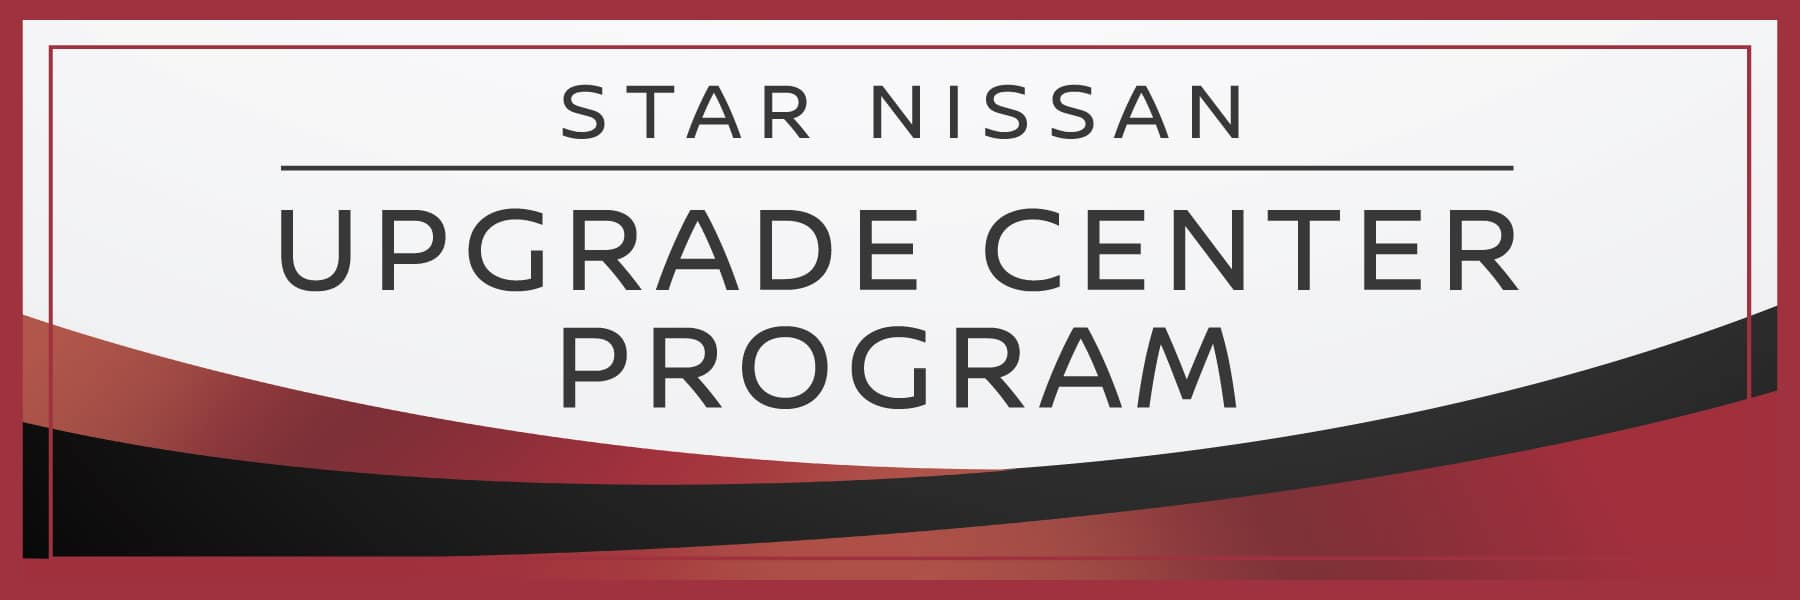 Upgrade Center at Star Nissan